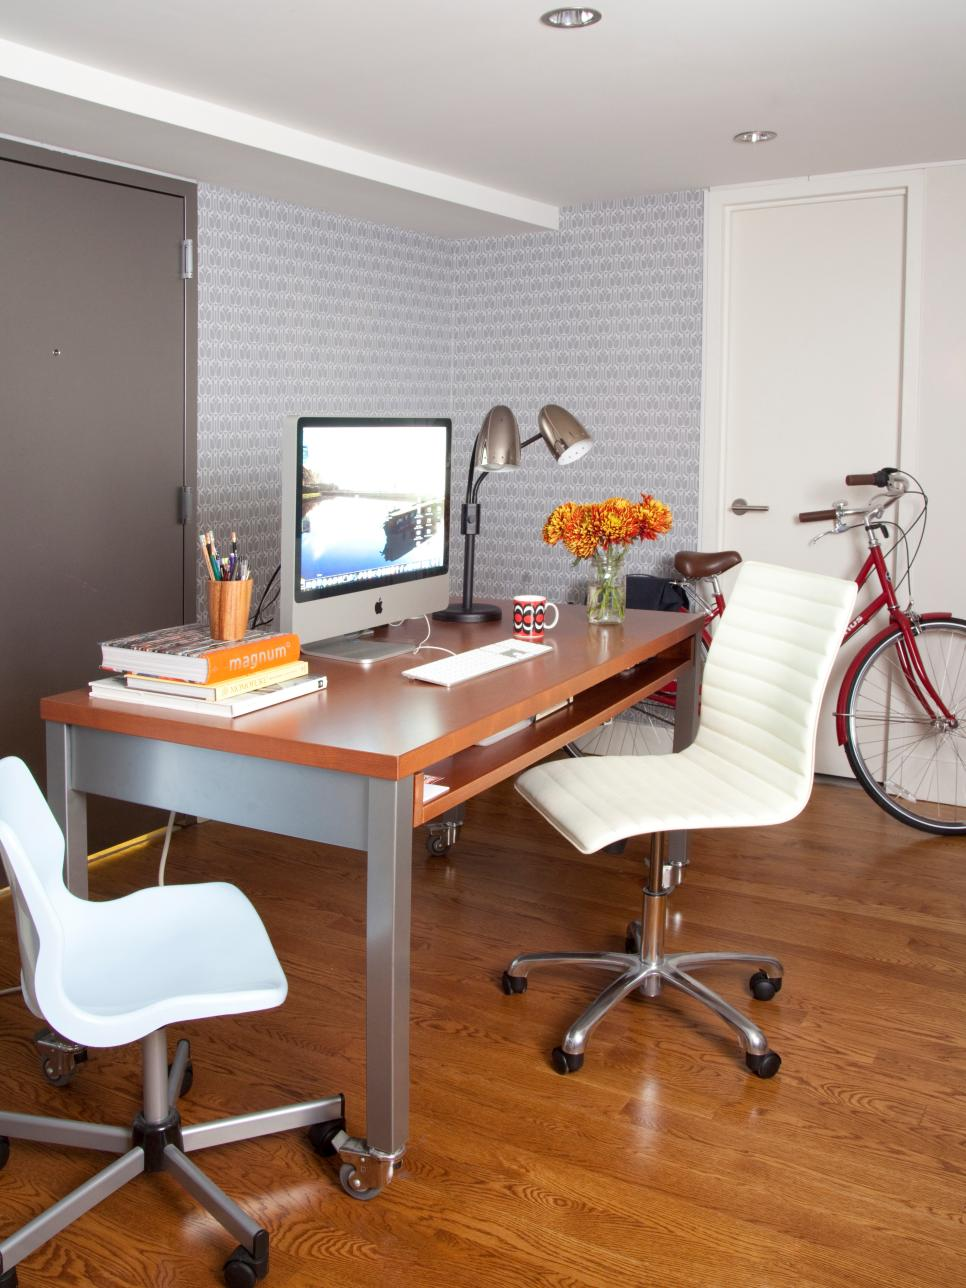 Small home office ideas hgtv for Small home office layout ideas